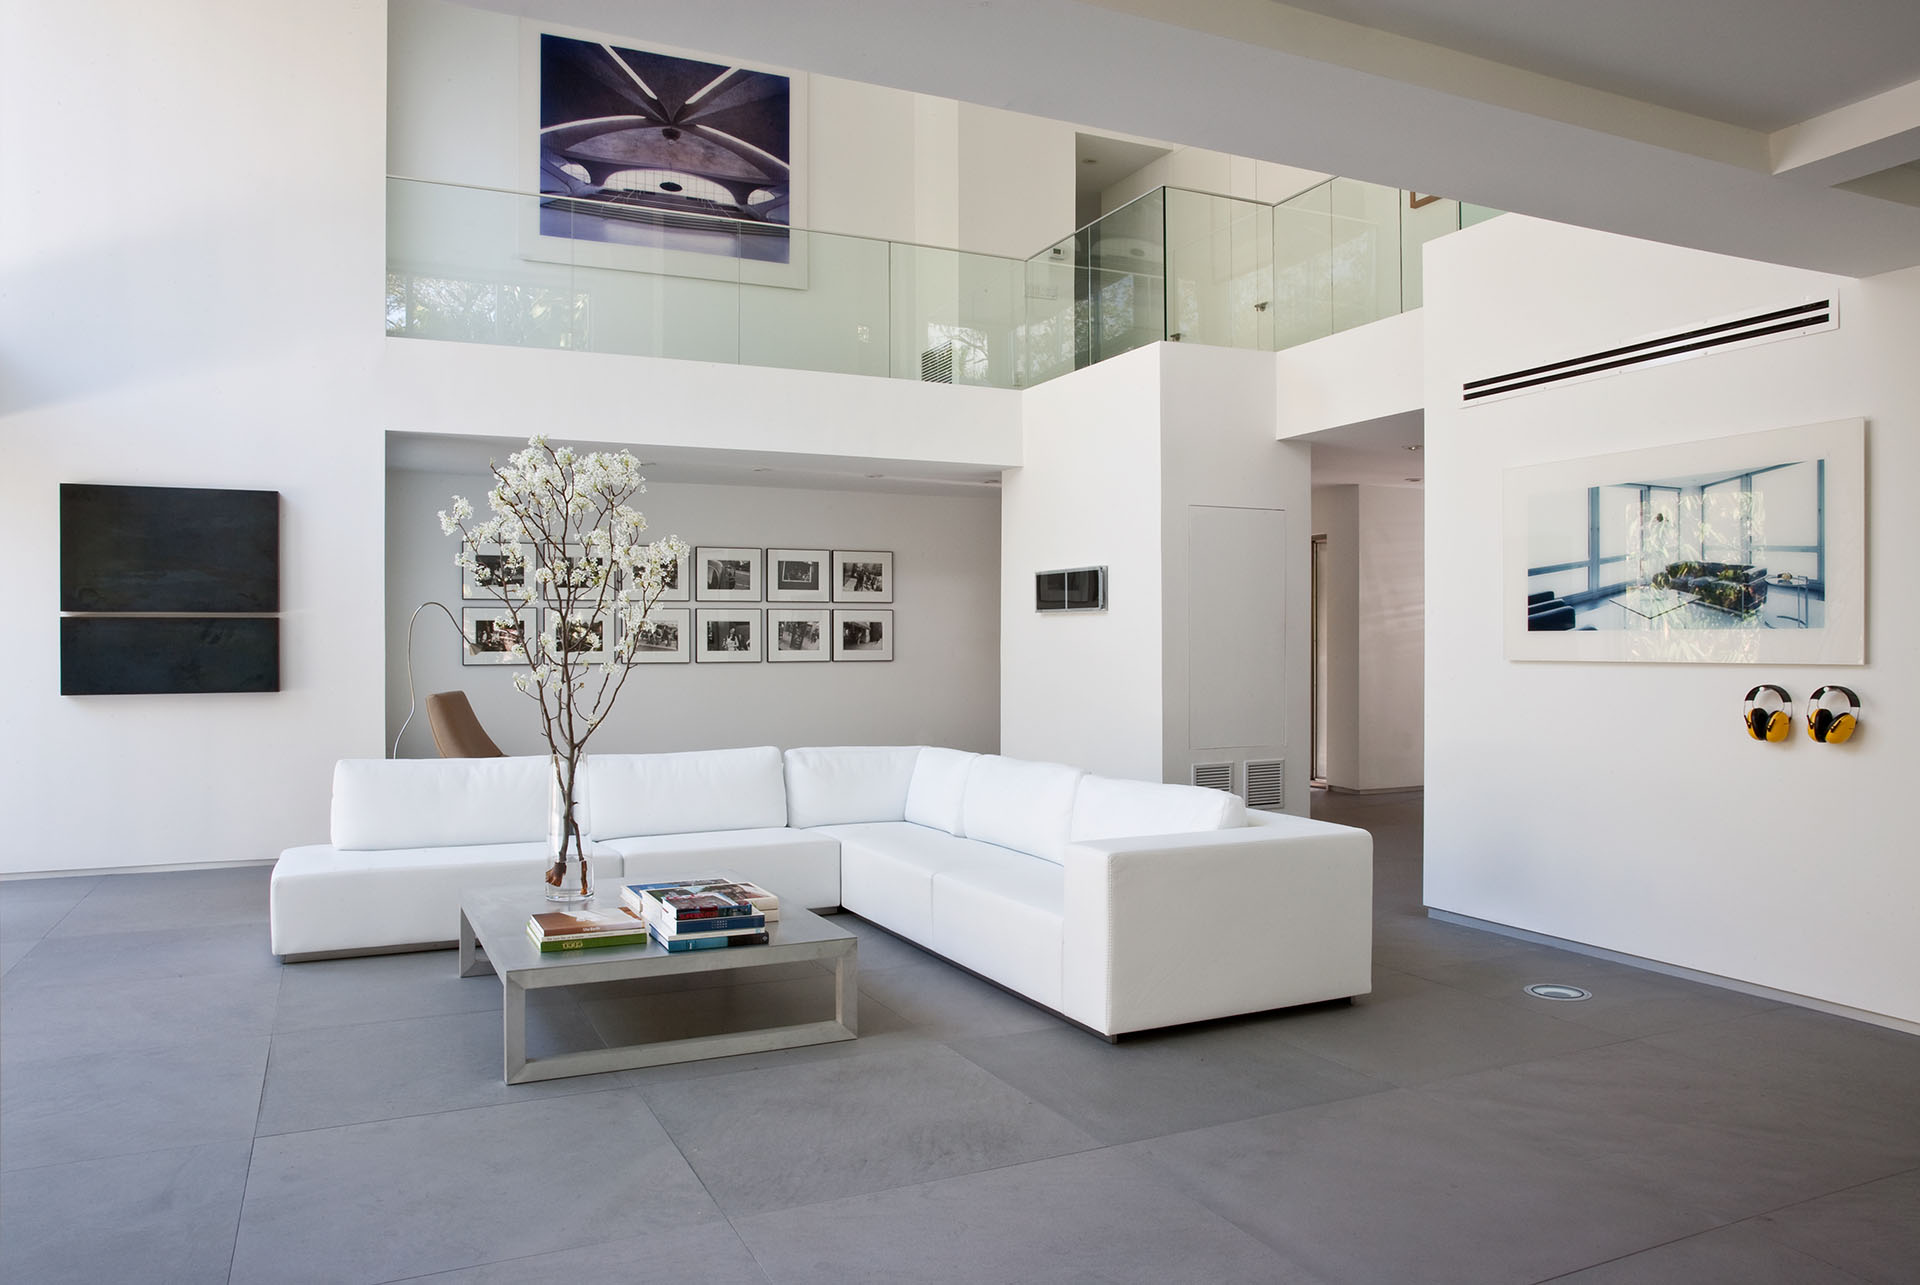 Calm and Minimalistic Spaces of Utopia Residence Coconut Grove by [STRANG] Architecture-04